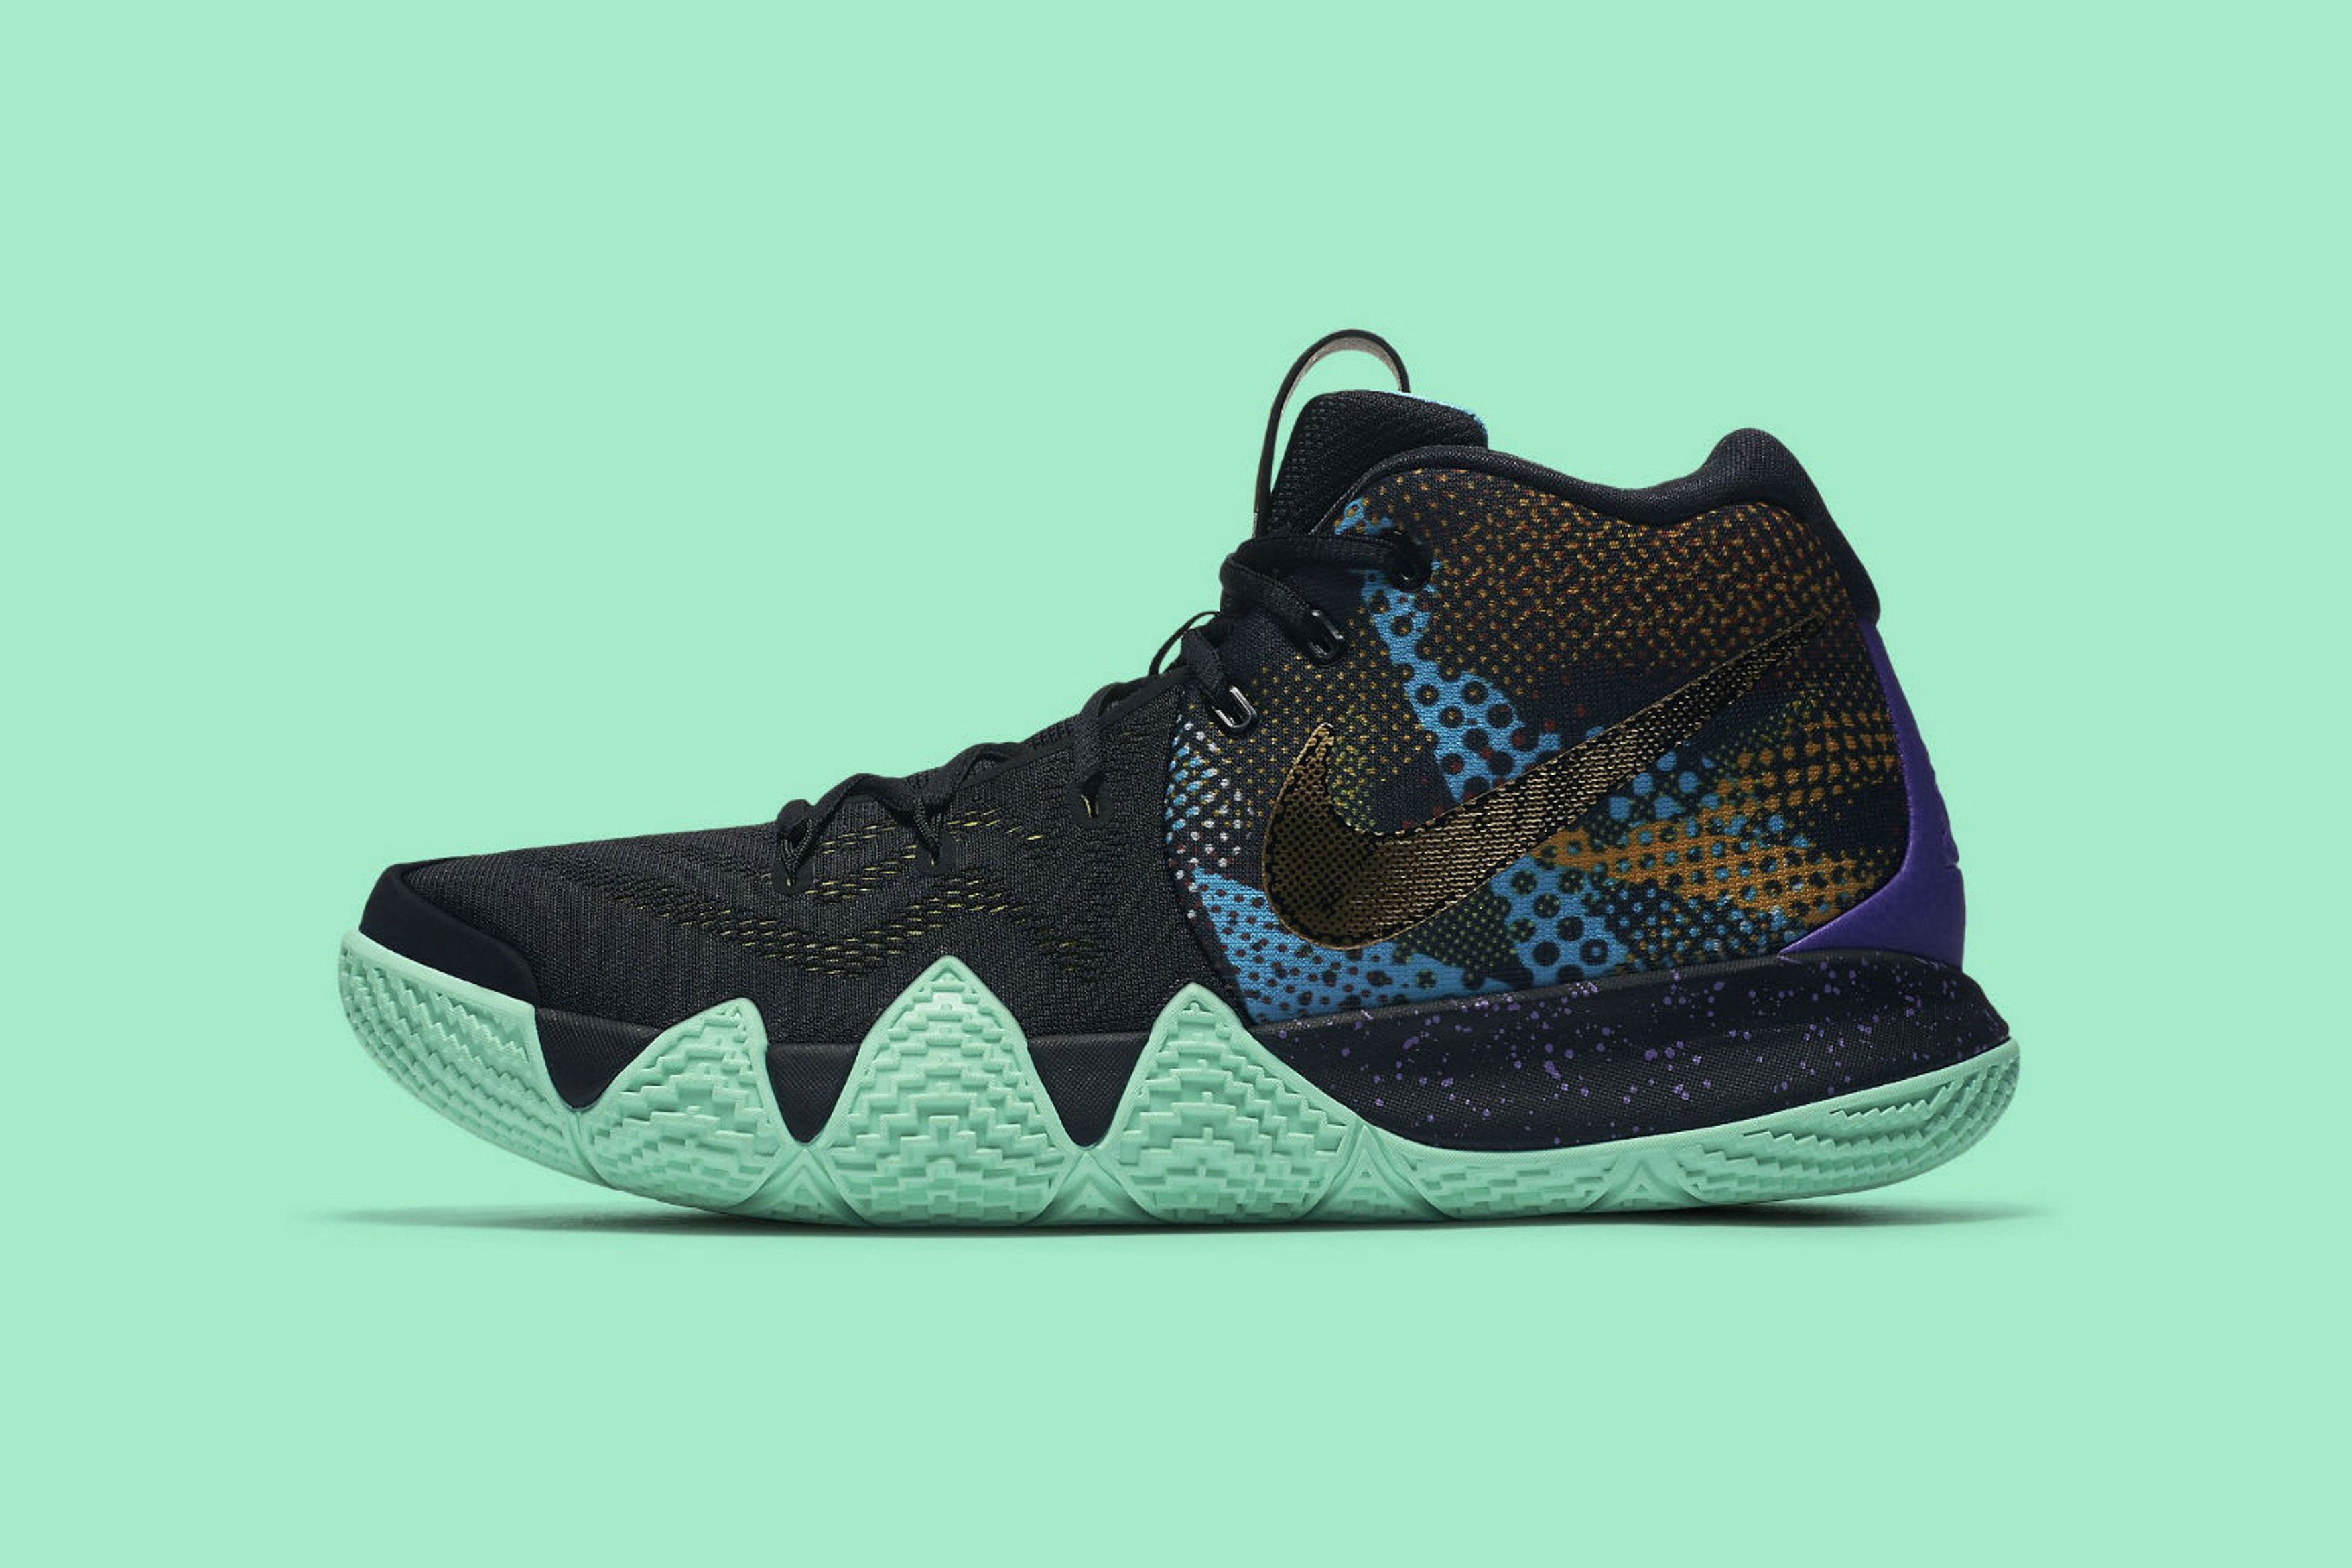 promo code 4be08 7c996 Here's the Nike Kyrie 4